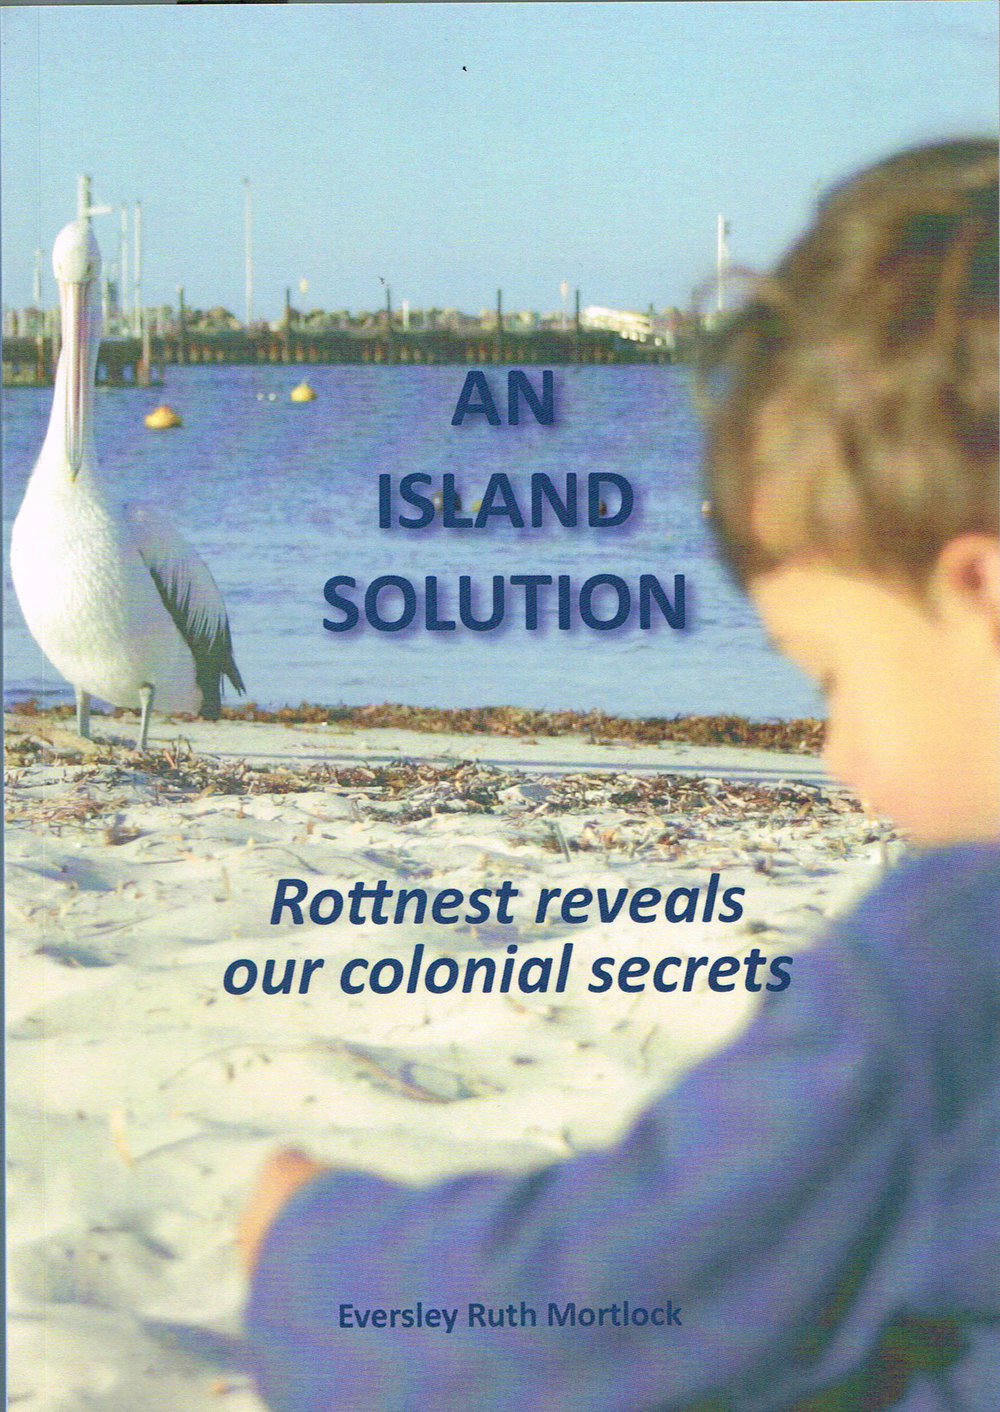 An island solution: Rottnest reveals our colonial secrets   Eversley Ruth Mortlock.